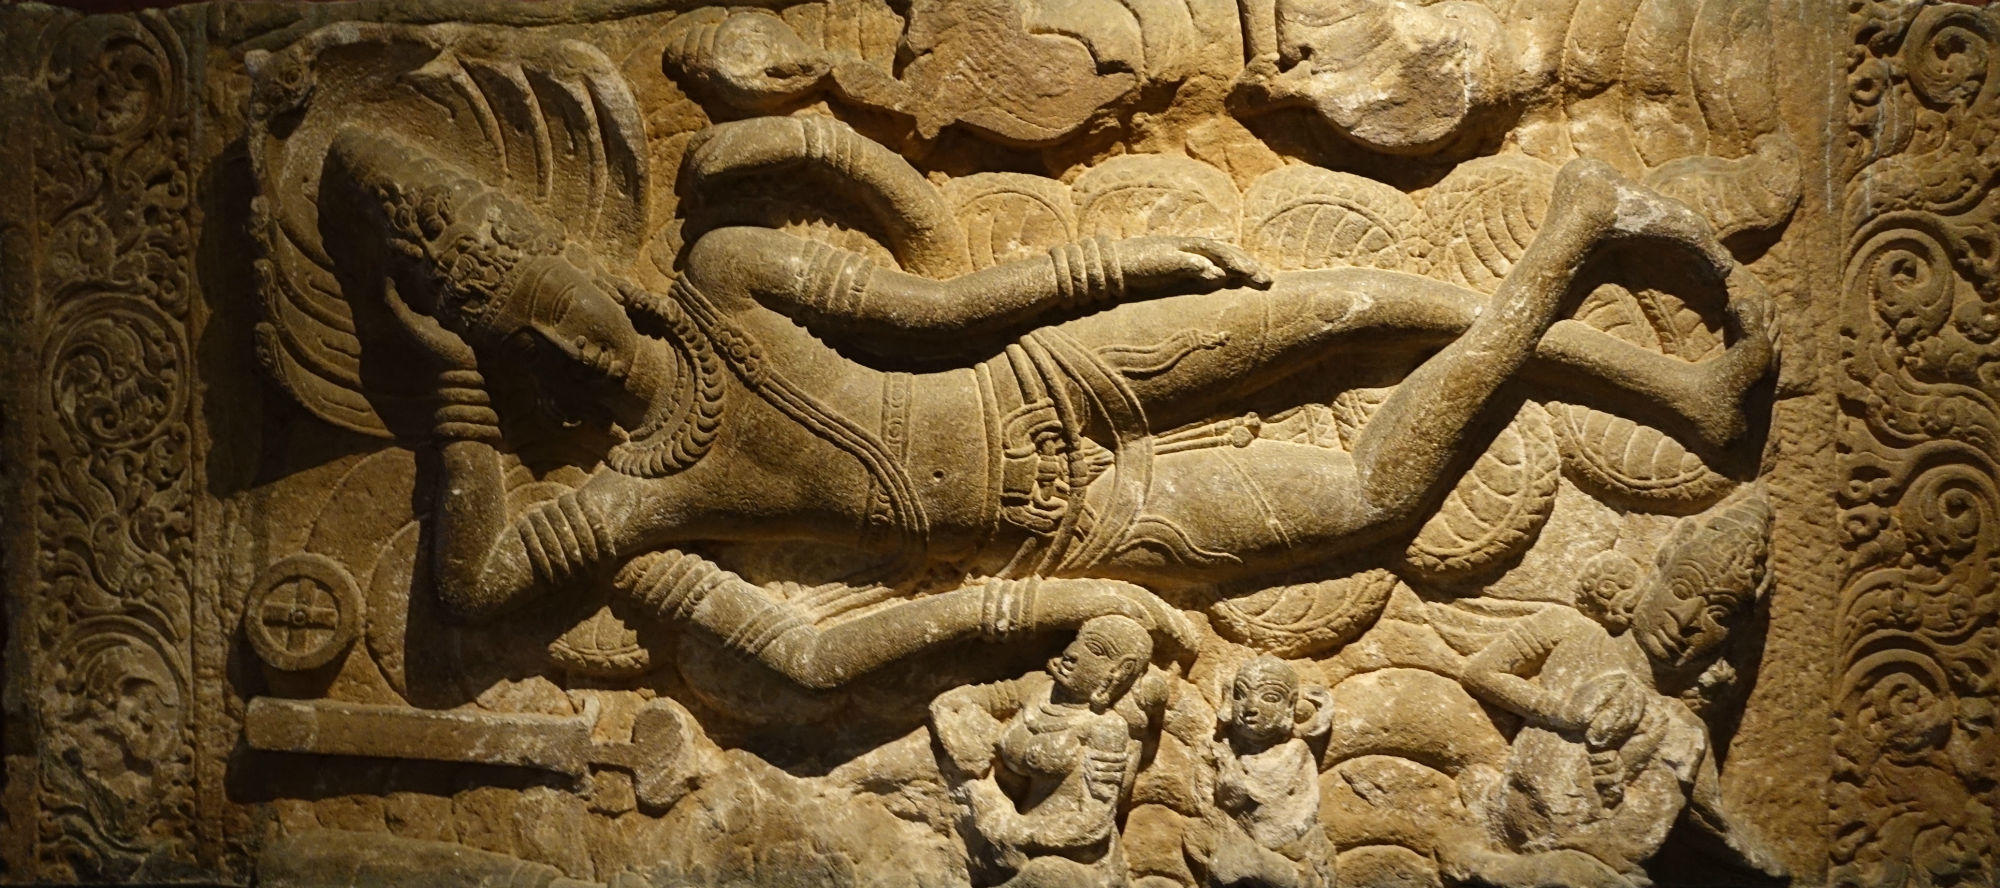 Vishnu Carving in Prince of Wales Museum